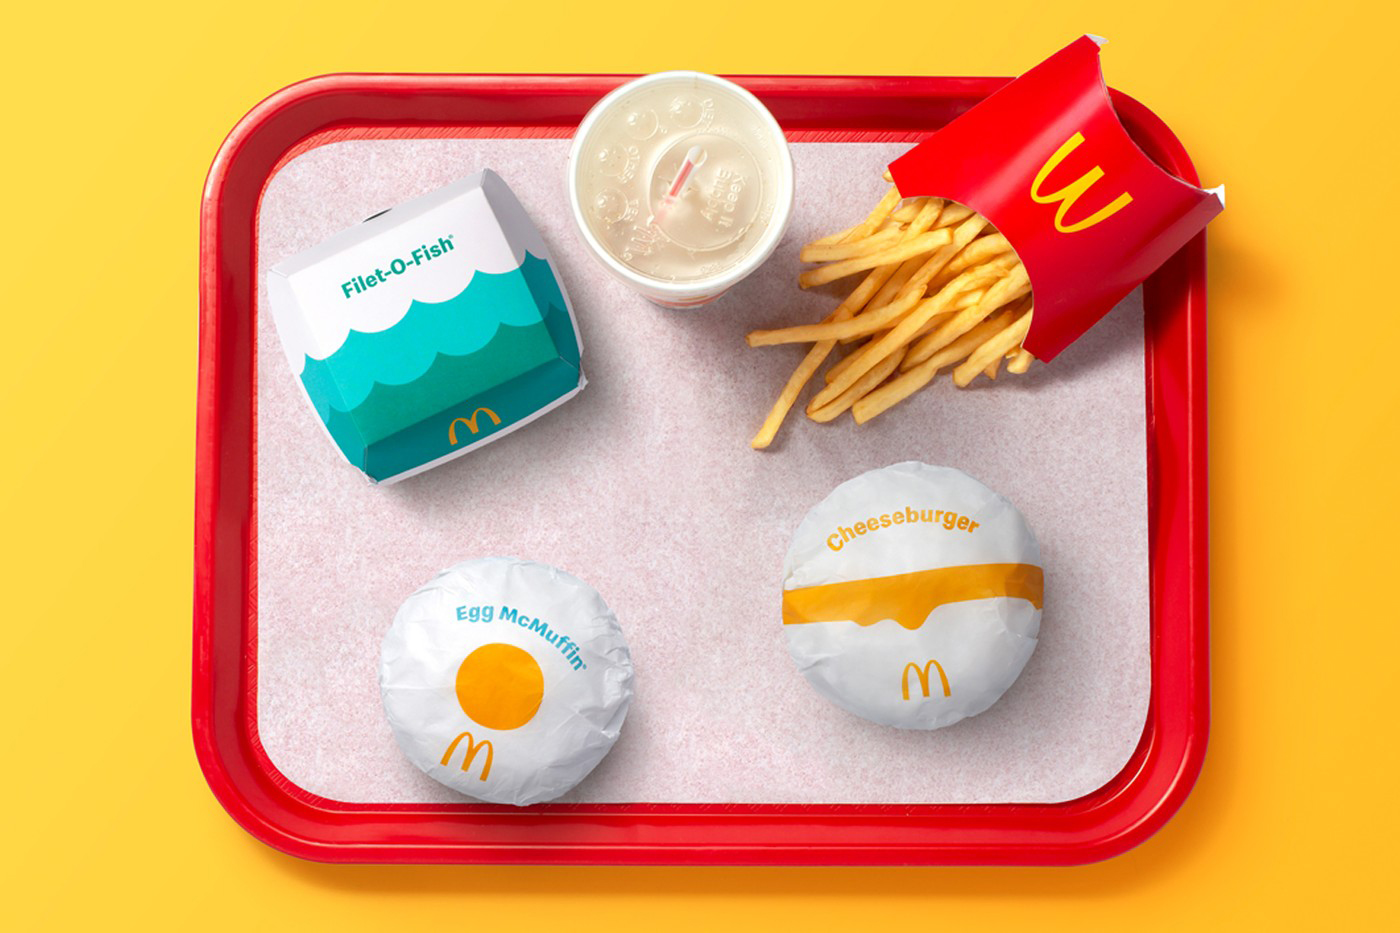 mcdonalds redesign rebranding packaging containers 04